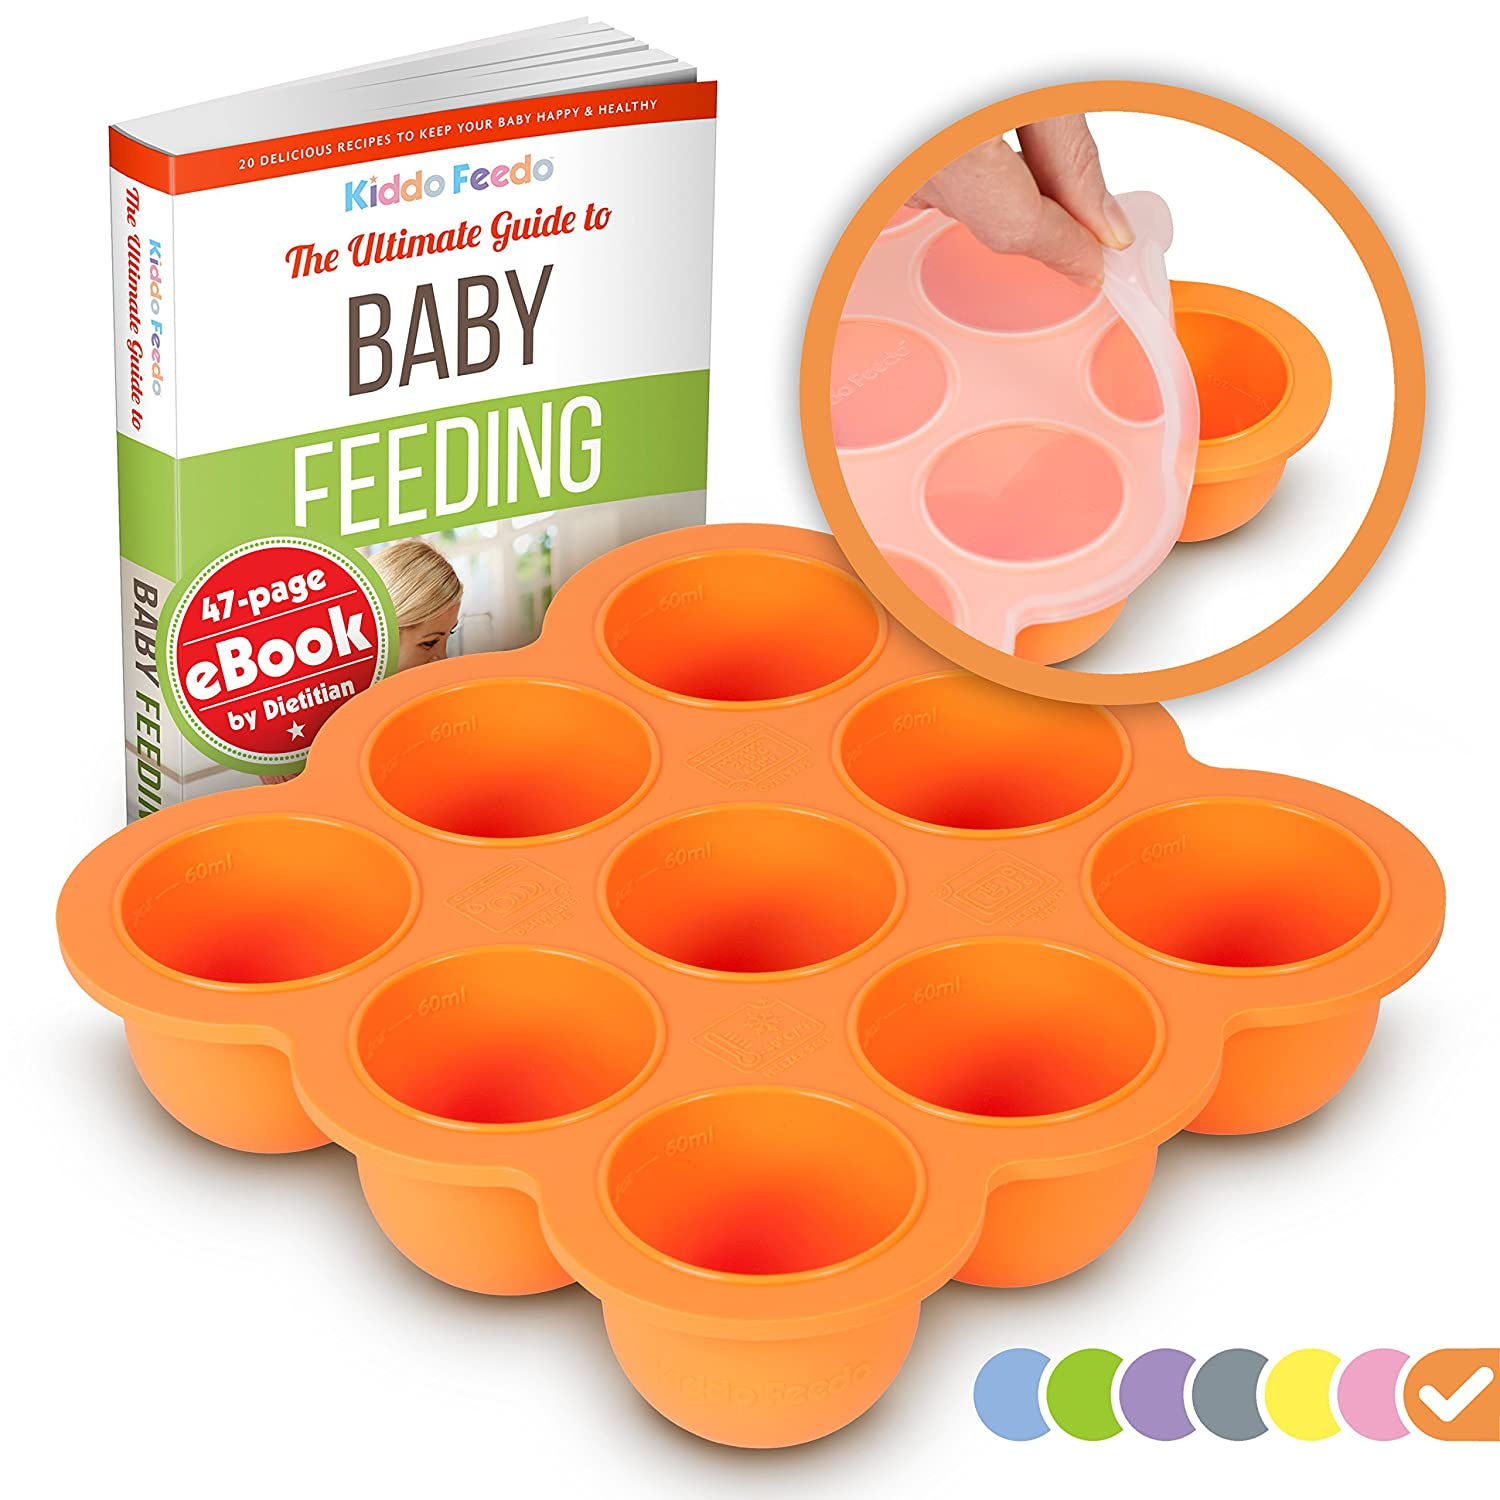 KIDDO FEEDO Baby Food Preparation & Storage Container Tray with Silicone Lid - BPA Free & FDA Approved - FREE E-book by Author/Dietitian - Orange